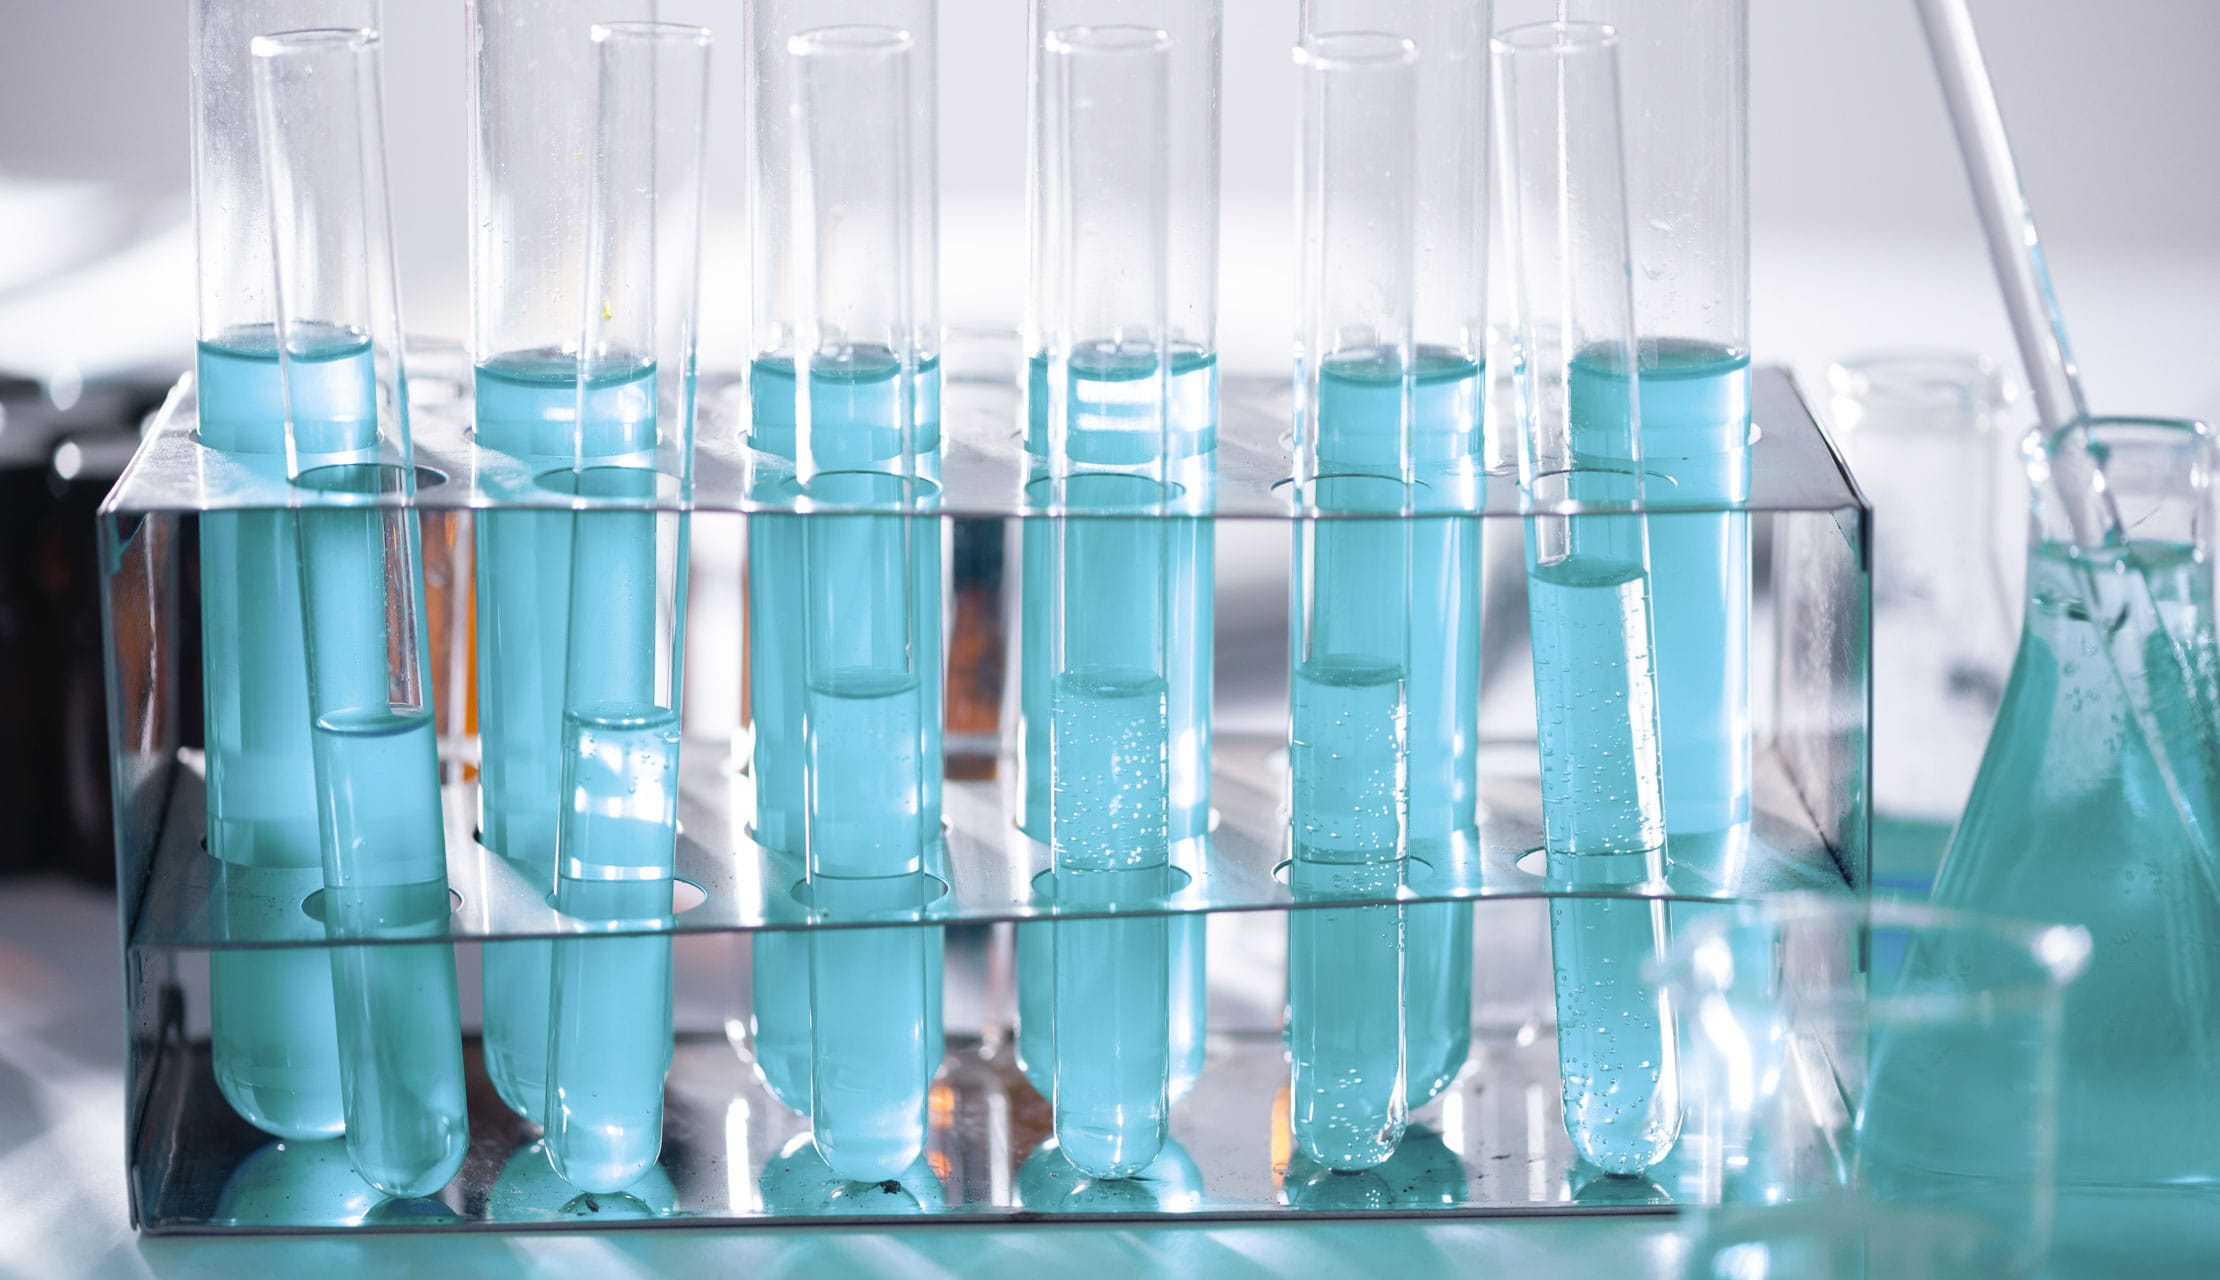 Test tubes filled with solution